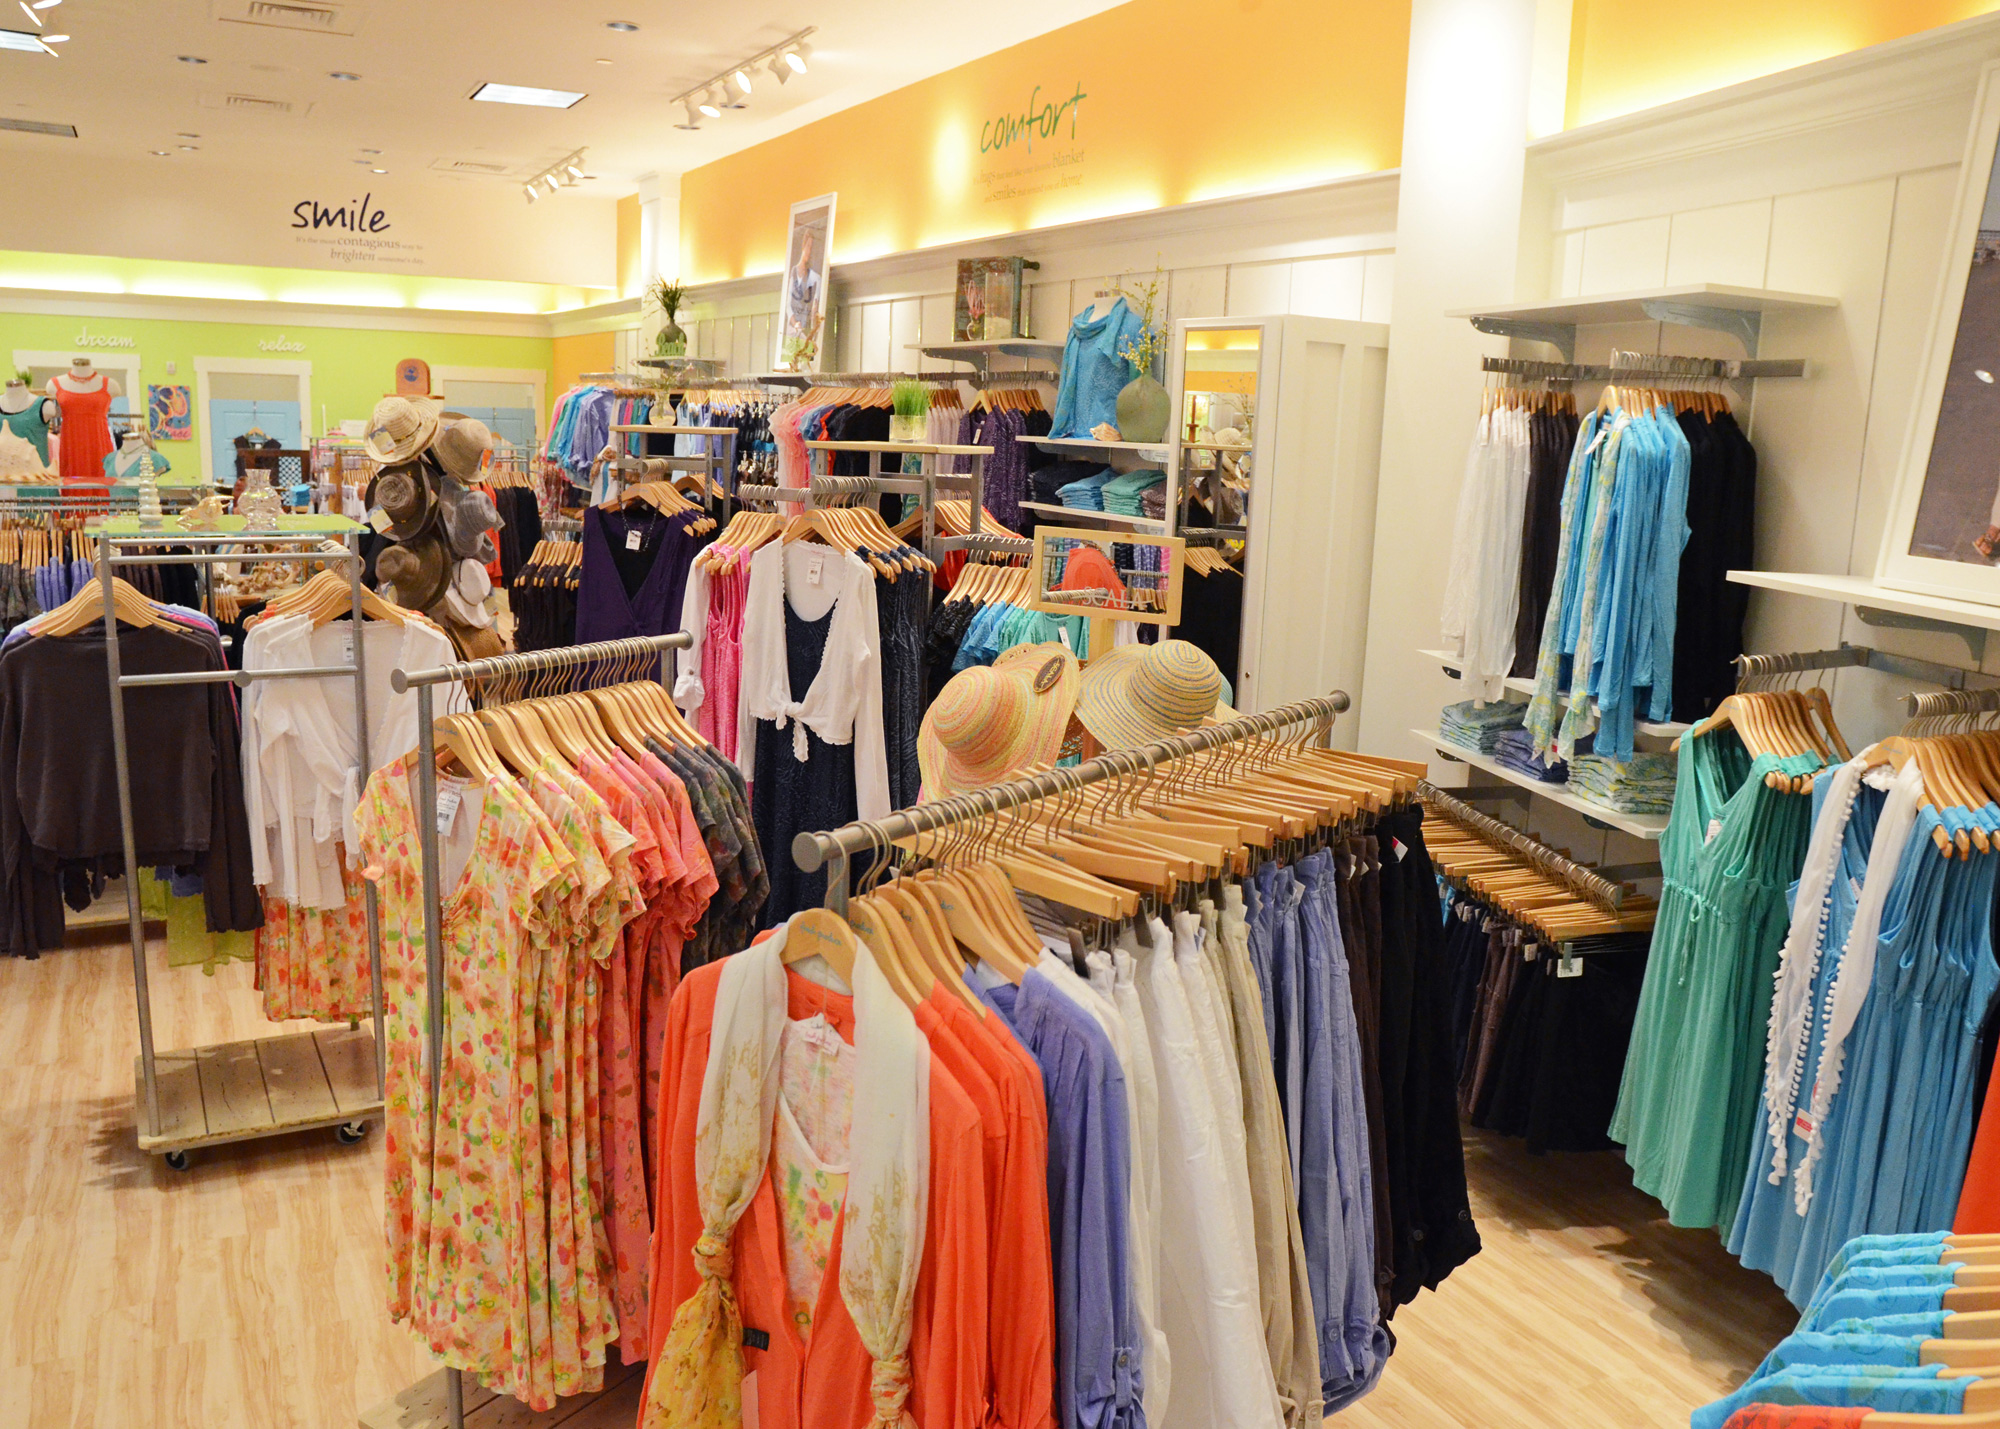 Shop Belk's selection of women's clothes and apparel for stylish wardrobe essentials. From women's designer clothing to more laid-back, casual clothing styles, Belk carries the latest in women's fashion at affordable prices.